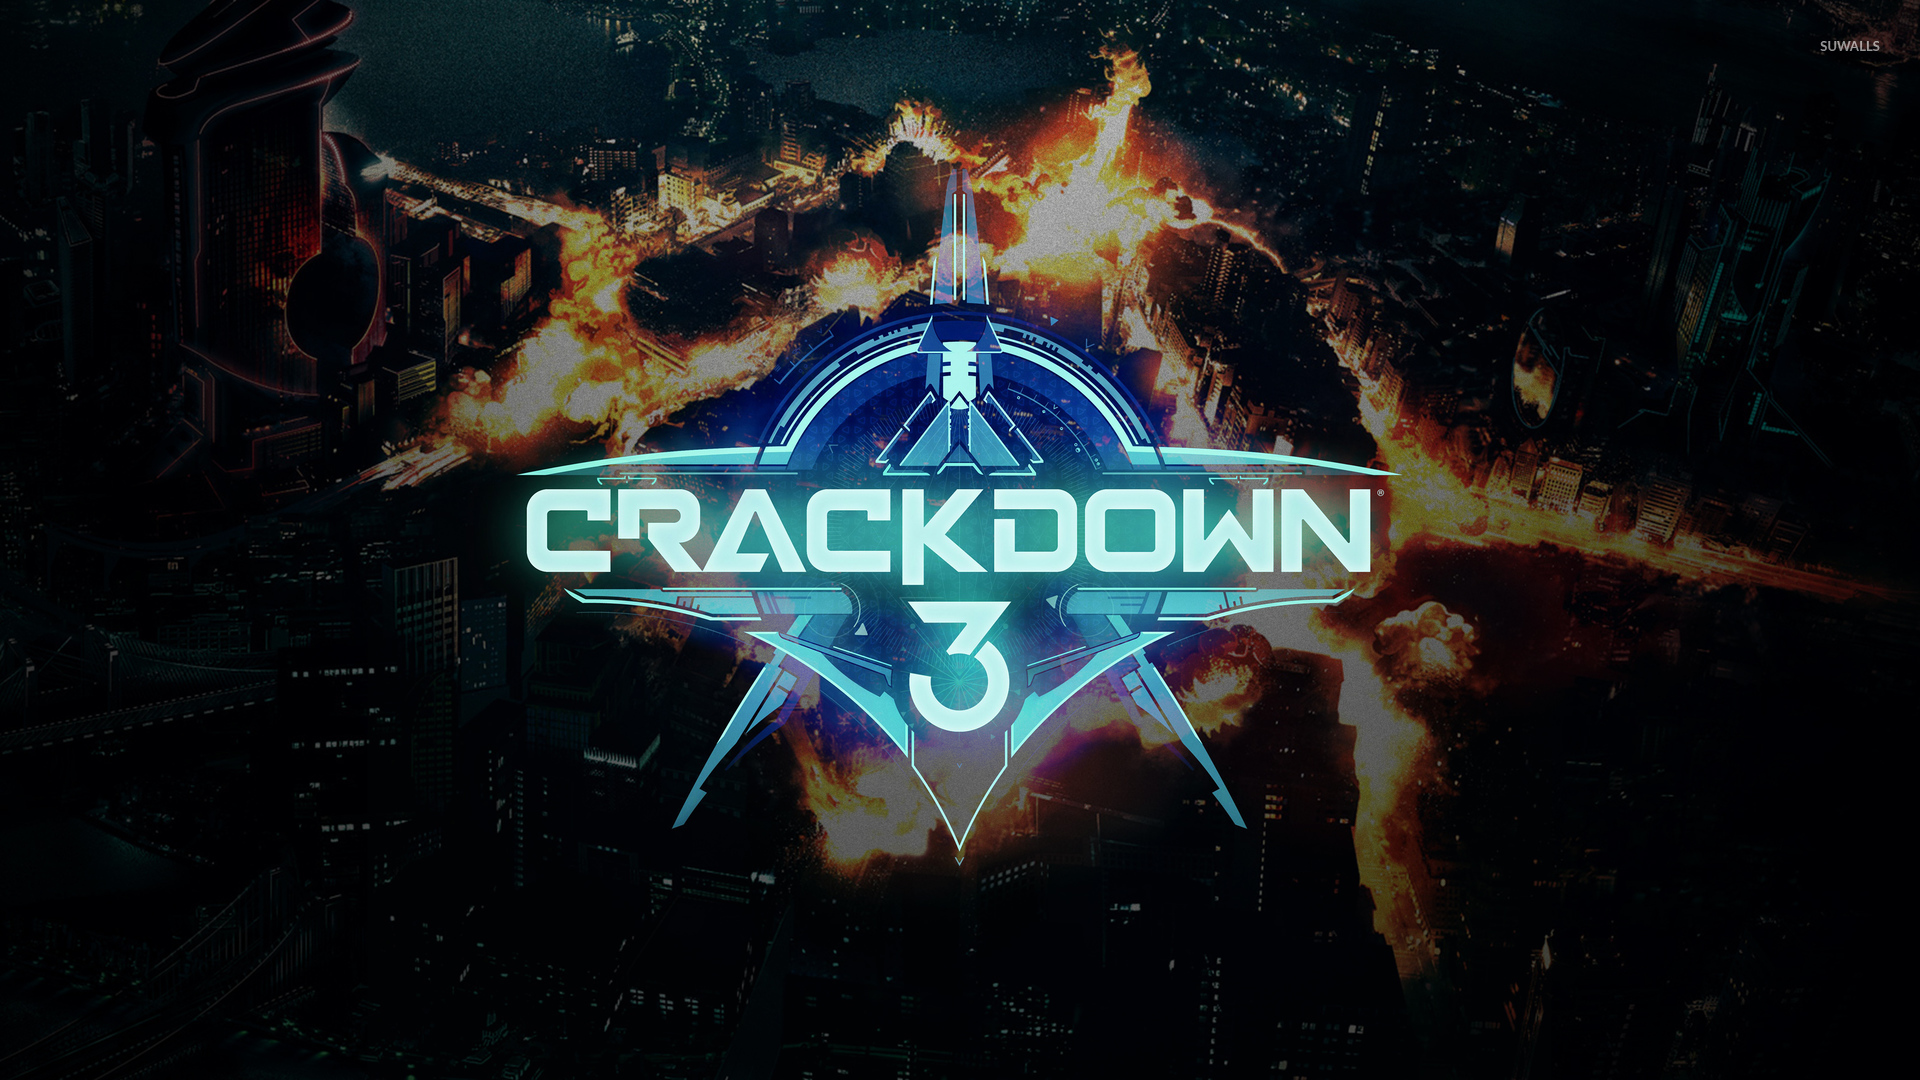 Fire In The City In Crackdown 3 Wallpaper Game Wallpapers 52830